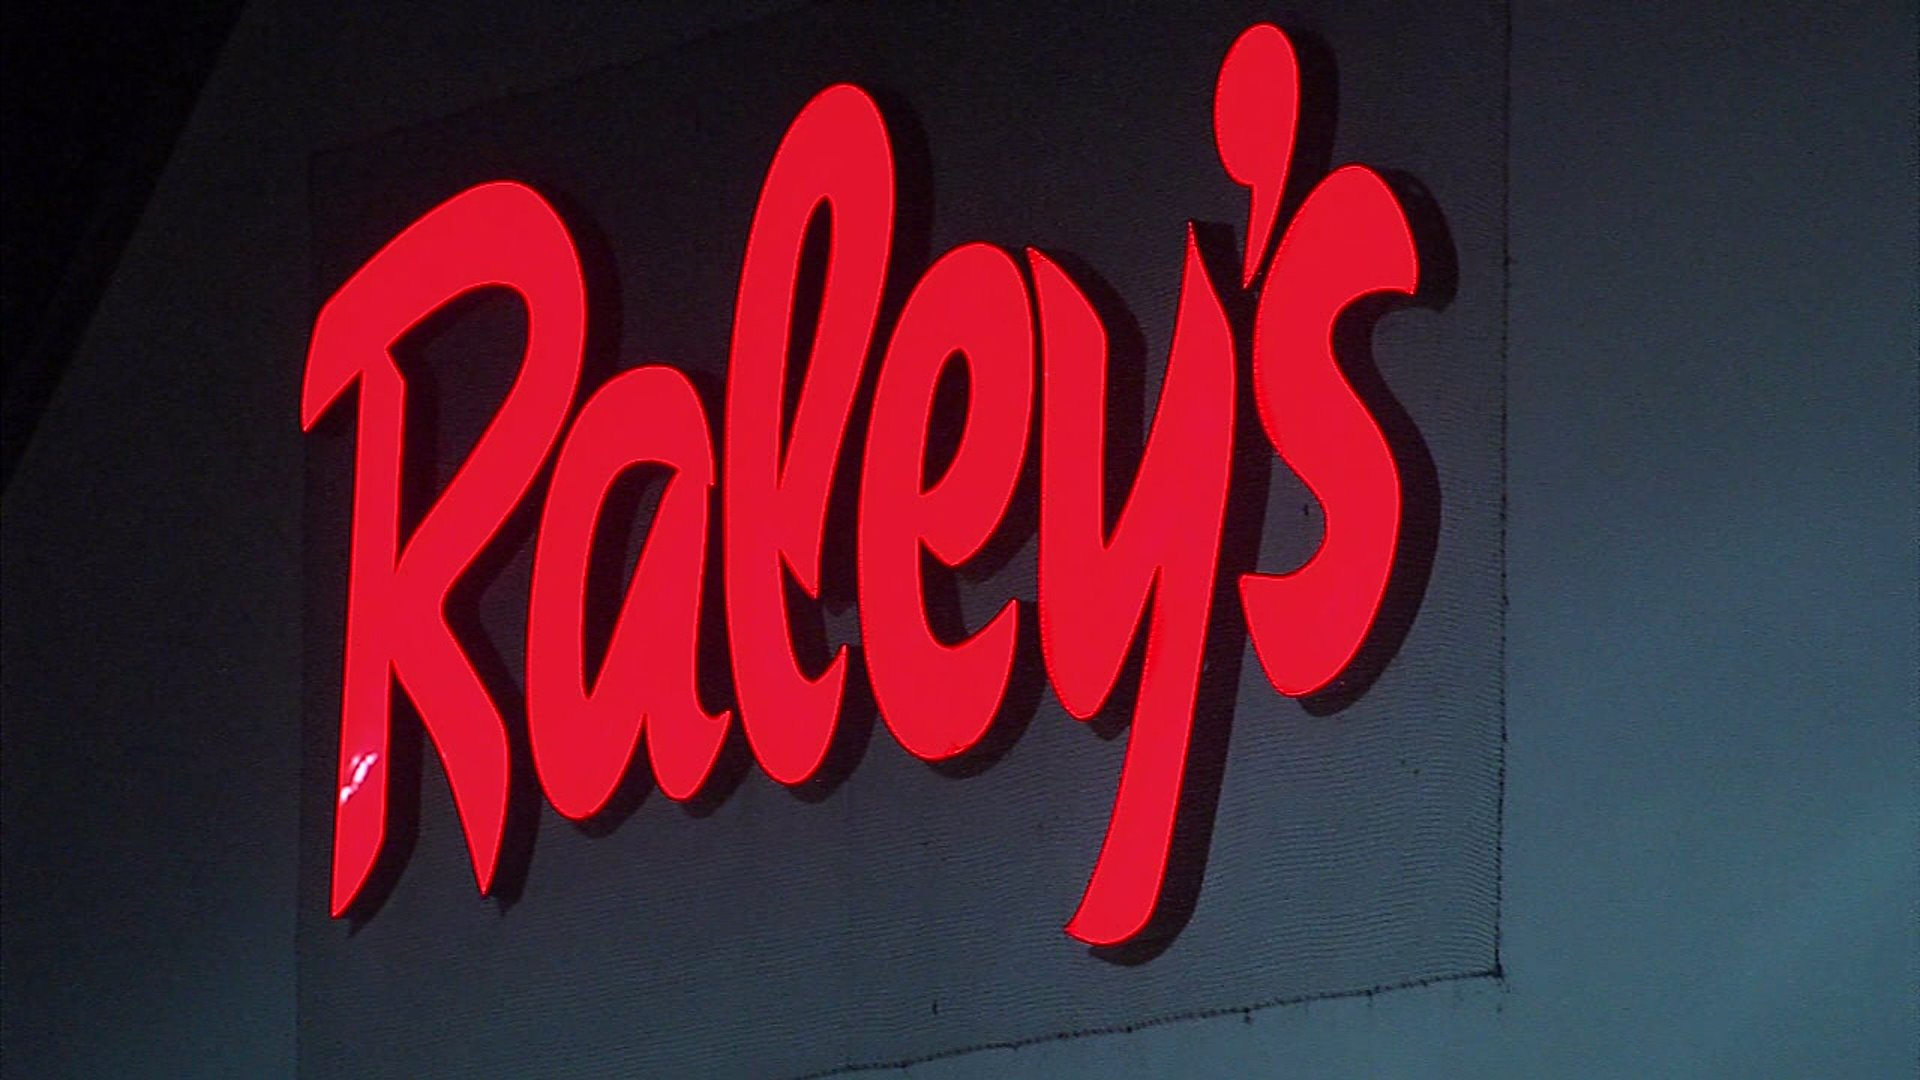 raley's, grocery store, chain, food, raley